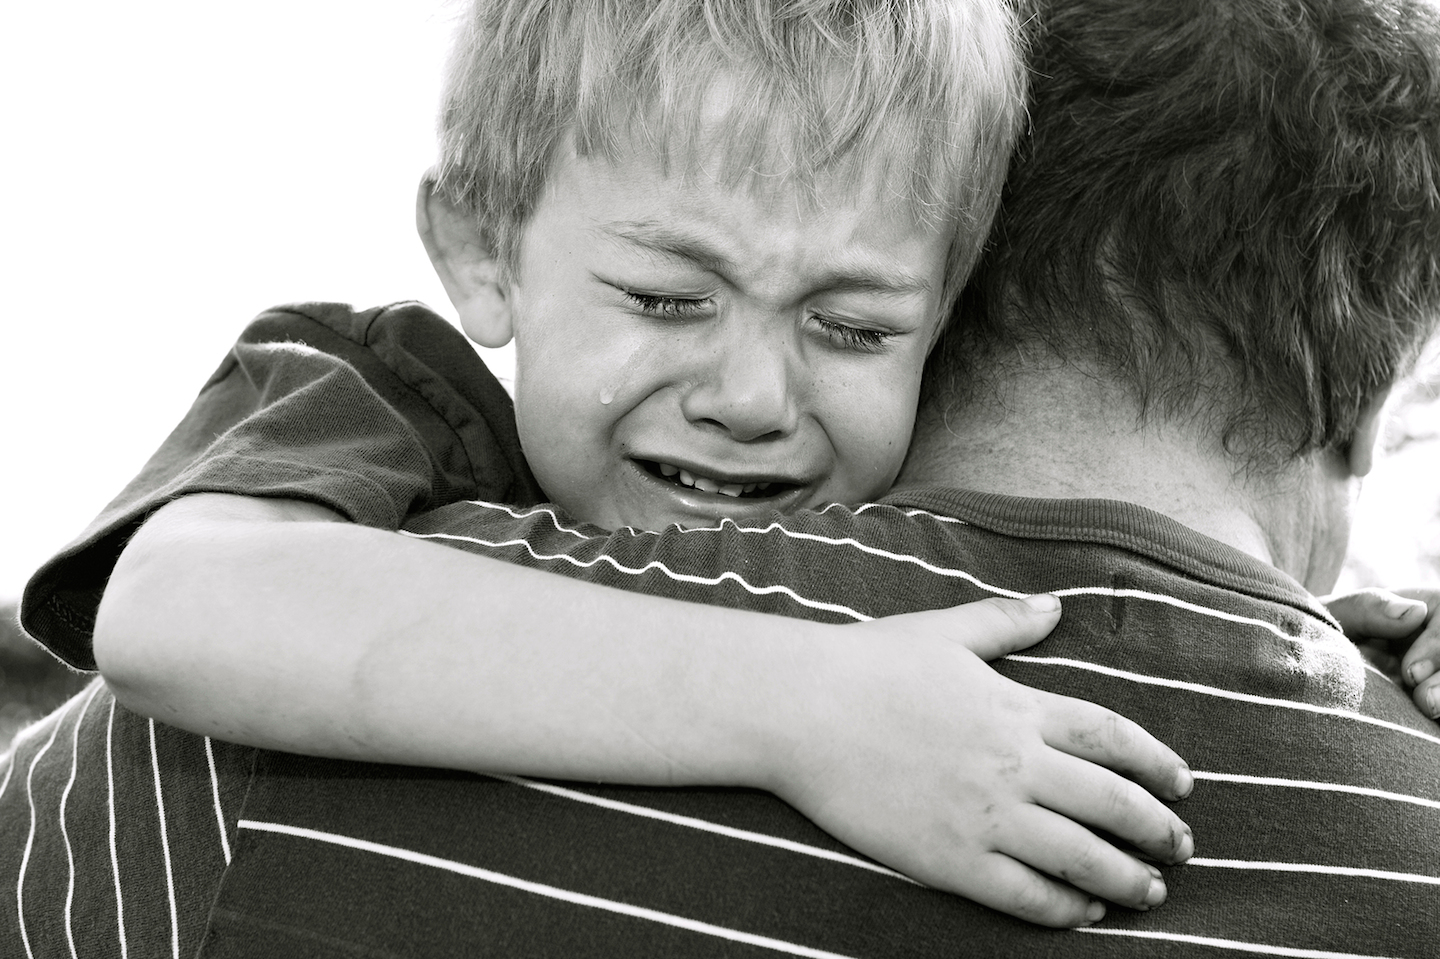 manage the pain of grief in your own way after losing a child